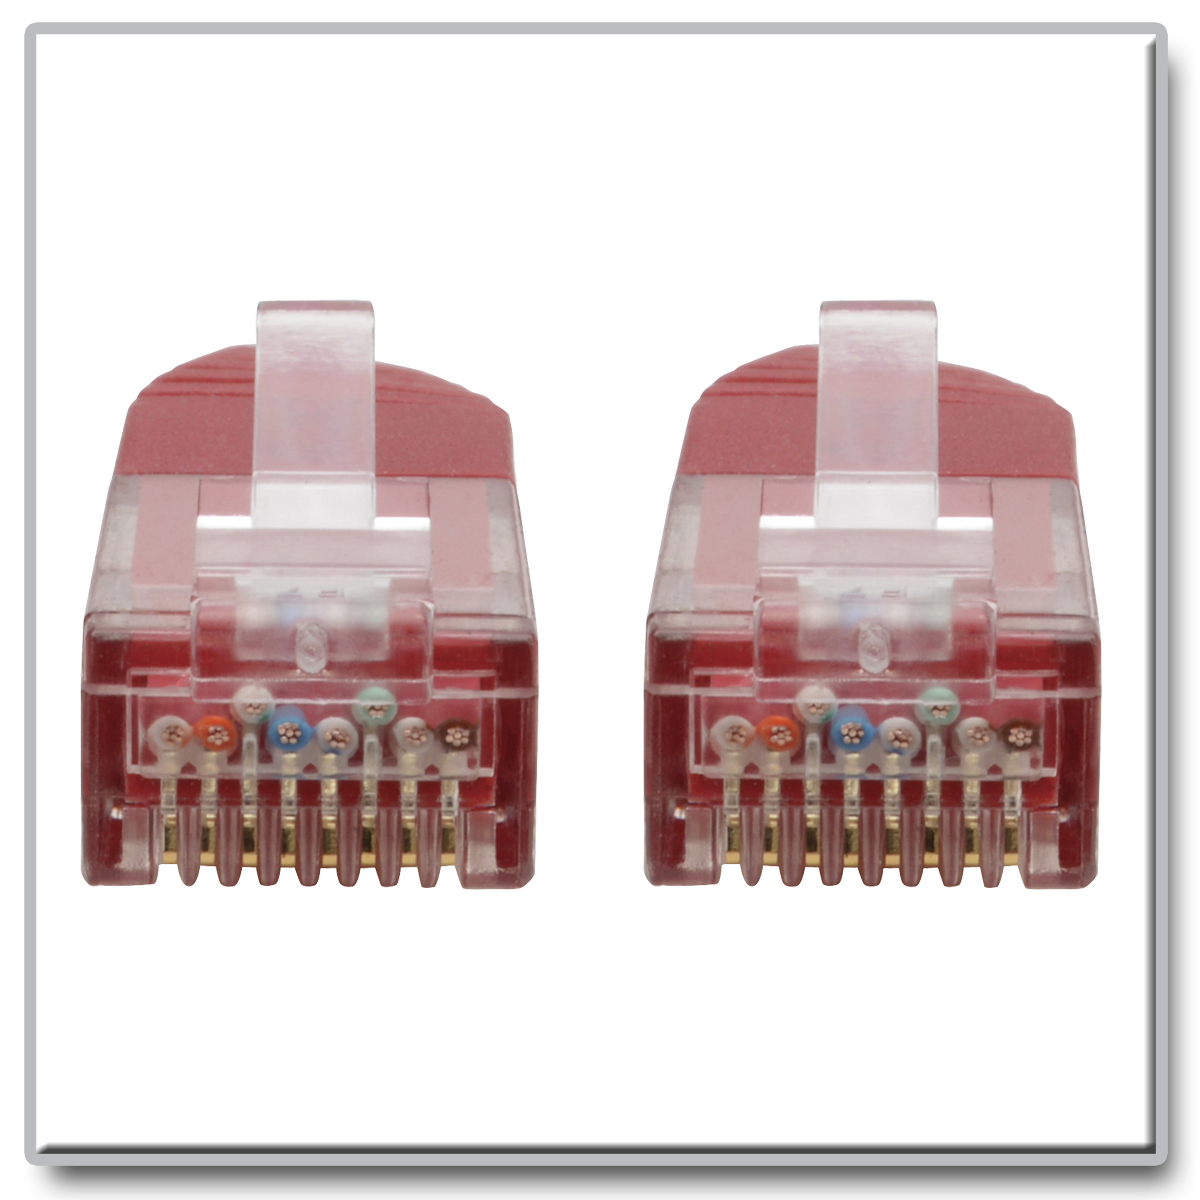 Rj45 To Rj45 Cable Cat6 550mhz Standards For Switch Router Modem Patch